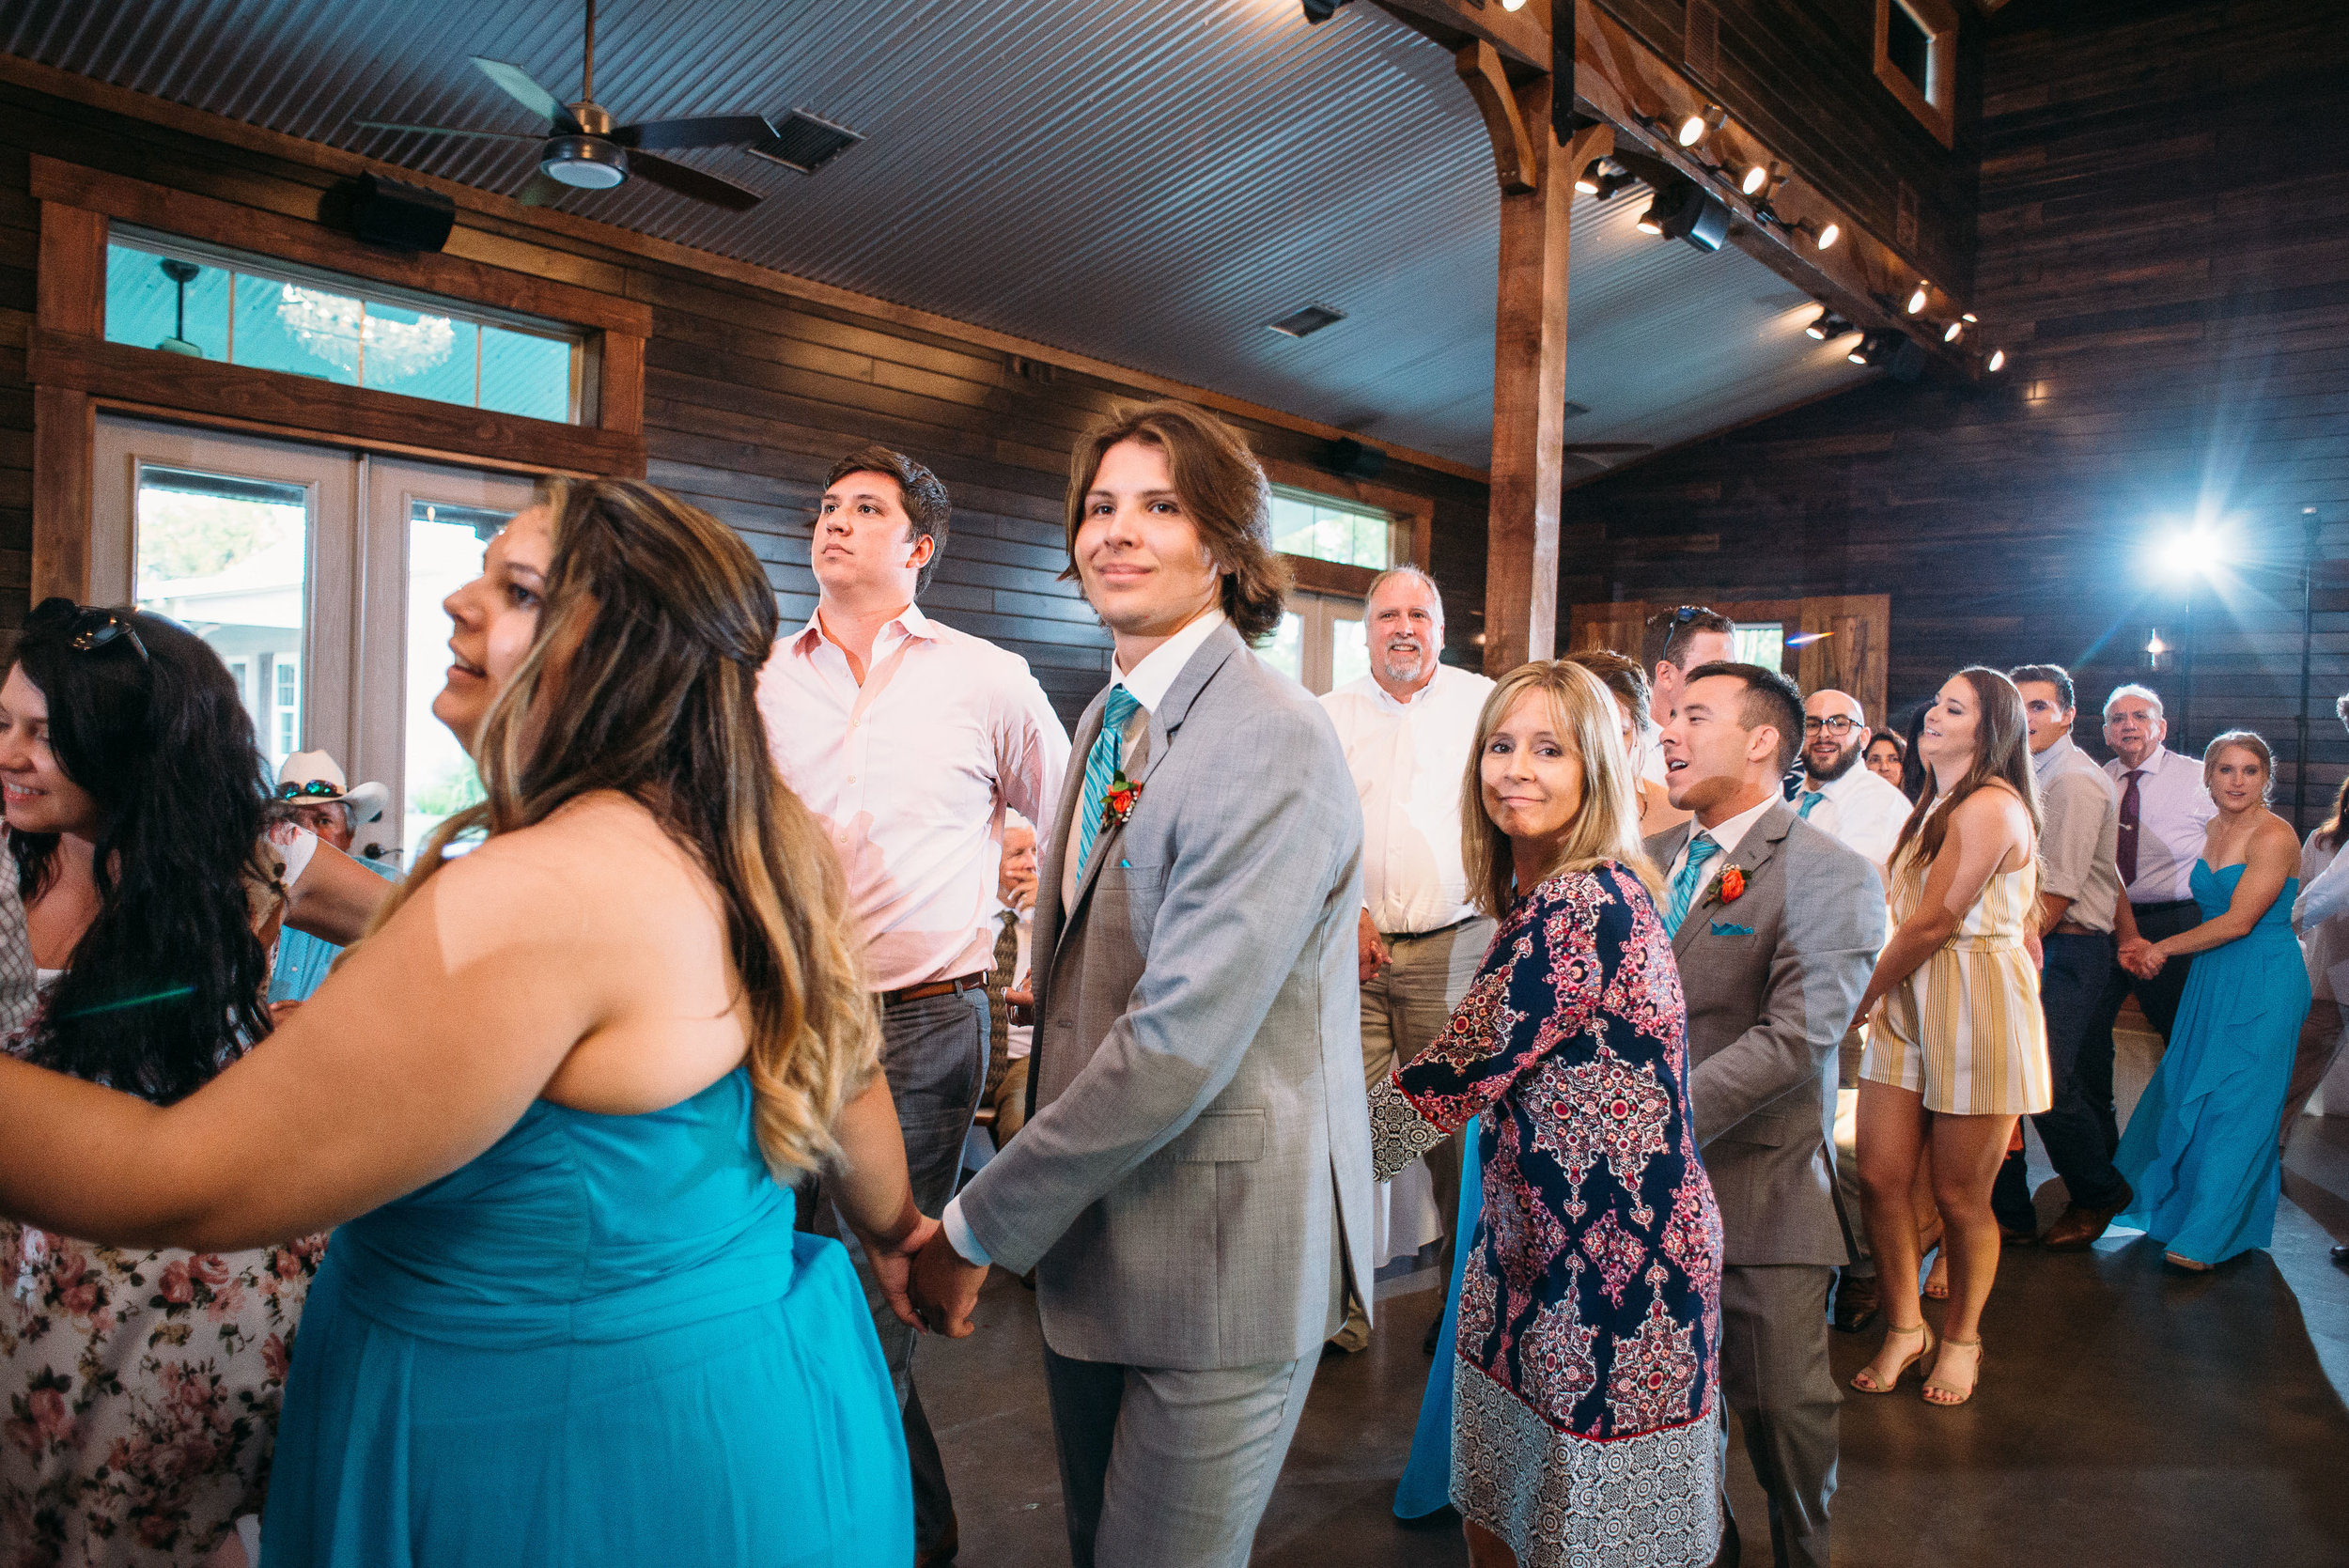 Cameron-Price-Peach-Creek-Ranch-Wedding-Ceremony-Bridals-Engagement-College-Station-Photographer-Videographer-San-Angel-Photo-00-0099.jpg